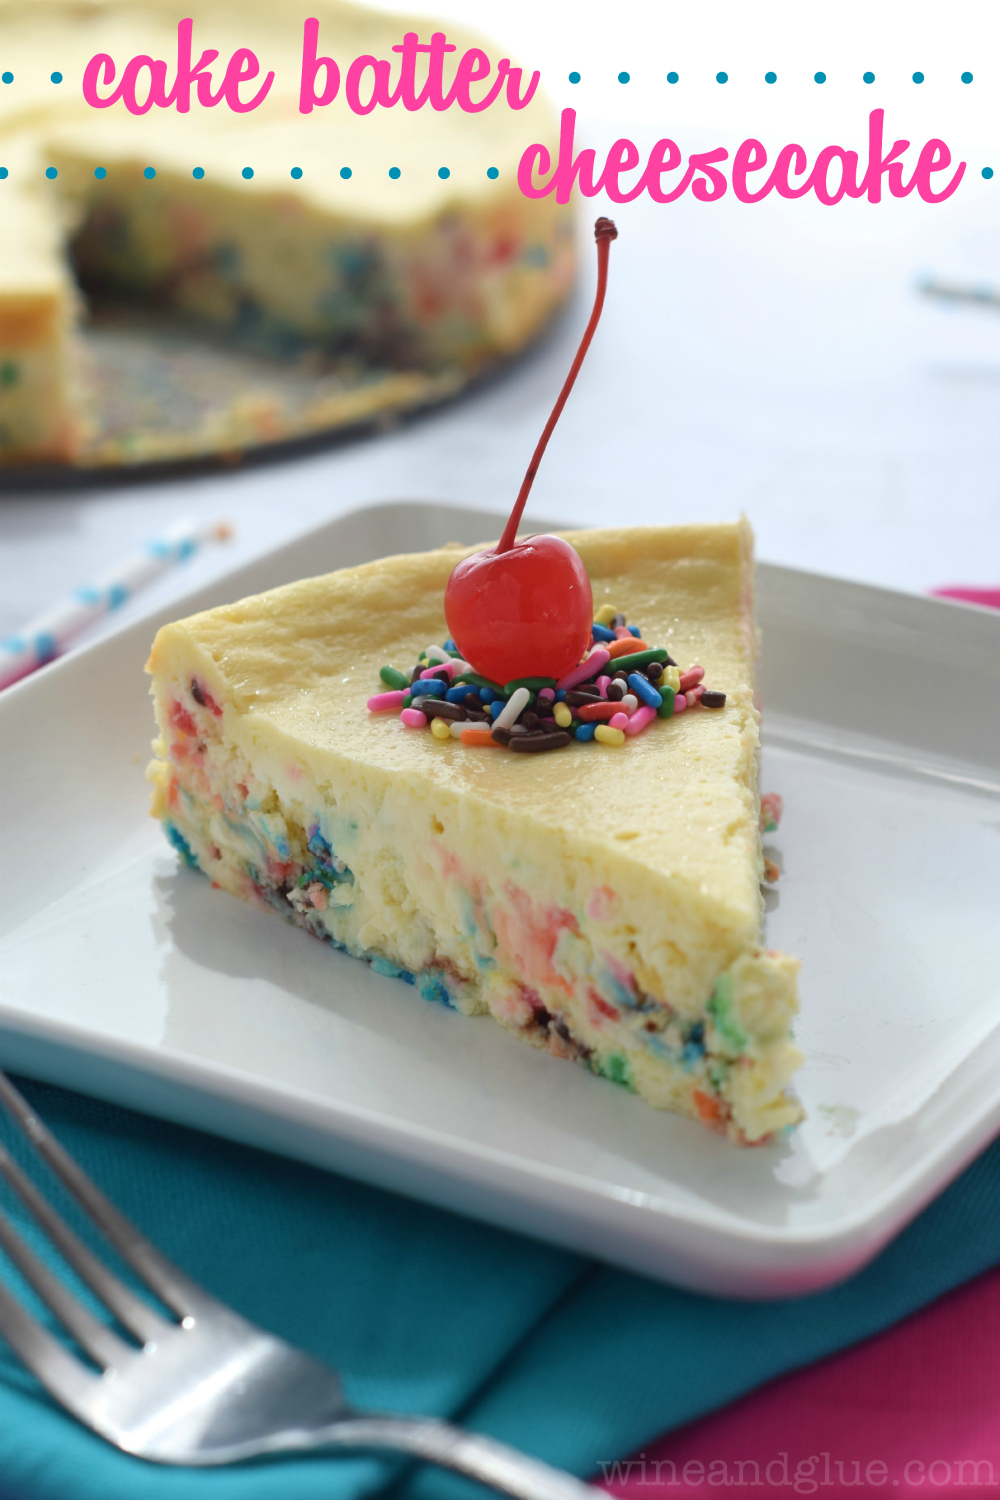 cake_batter_cheesecake_11